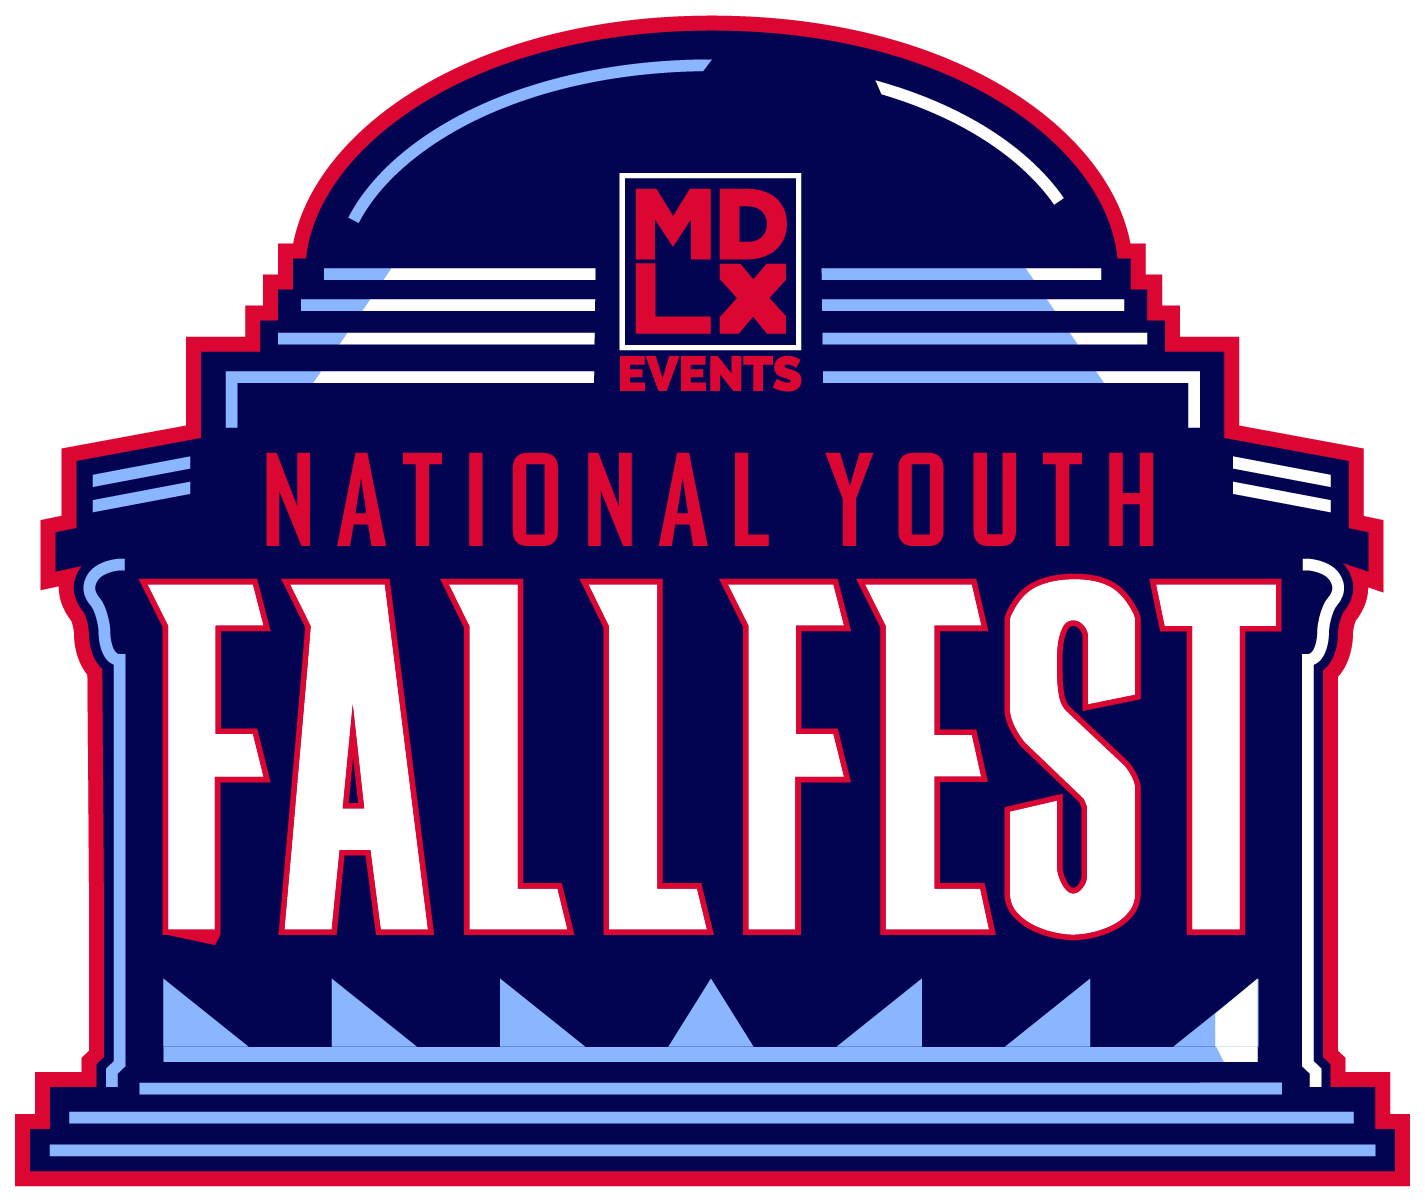 National Youth Fall Fest